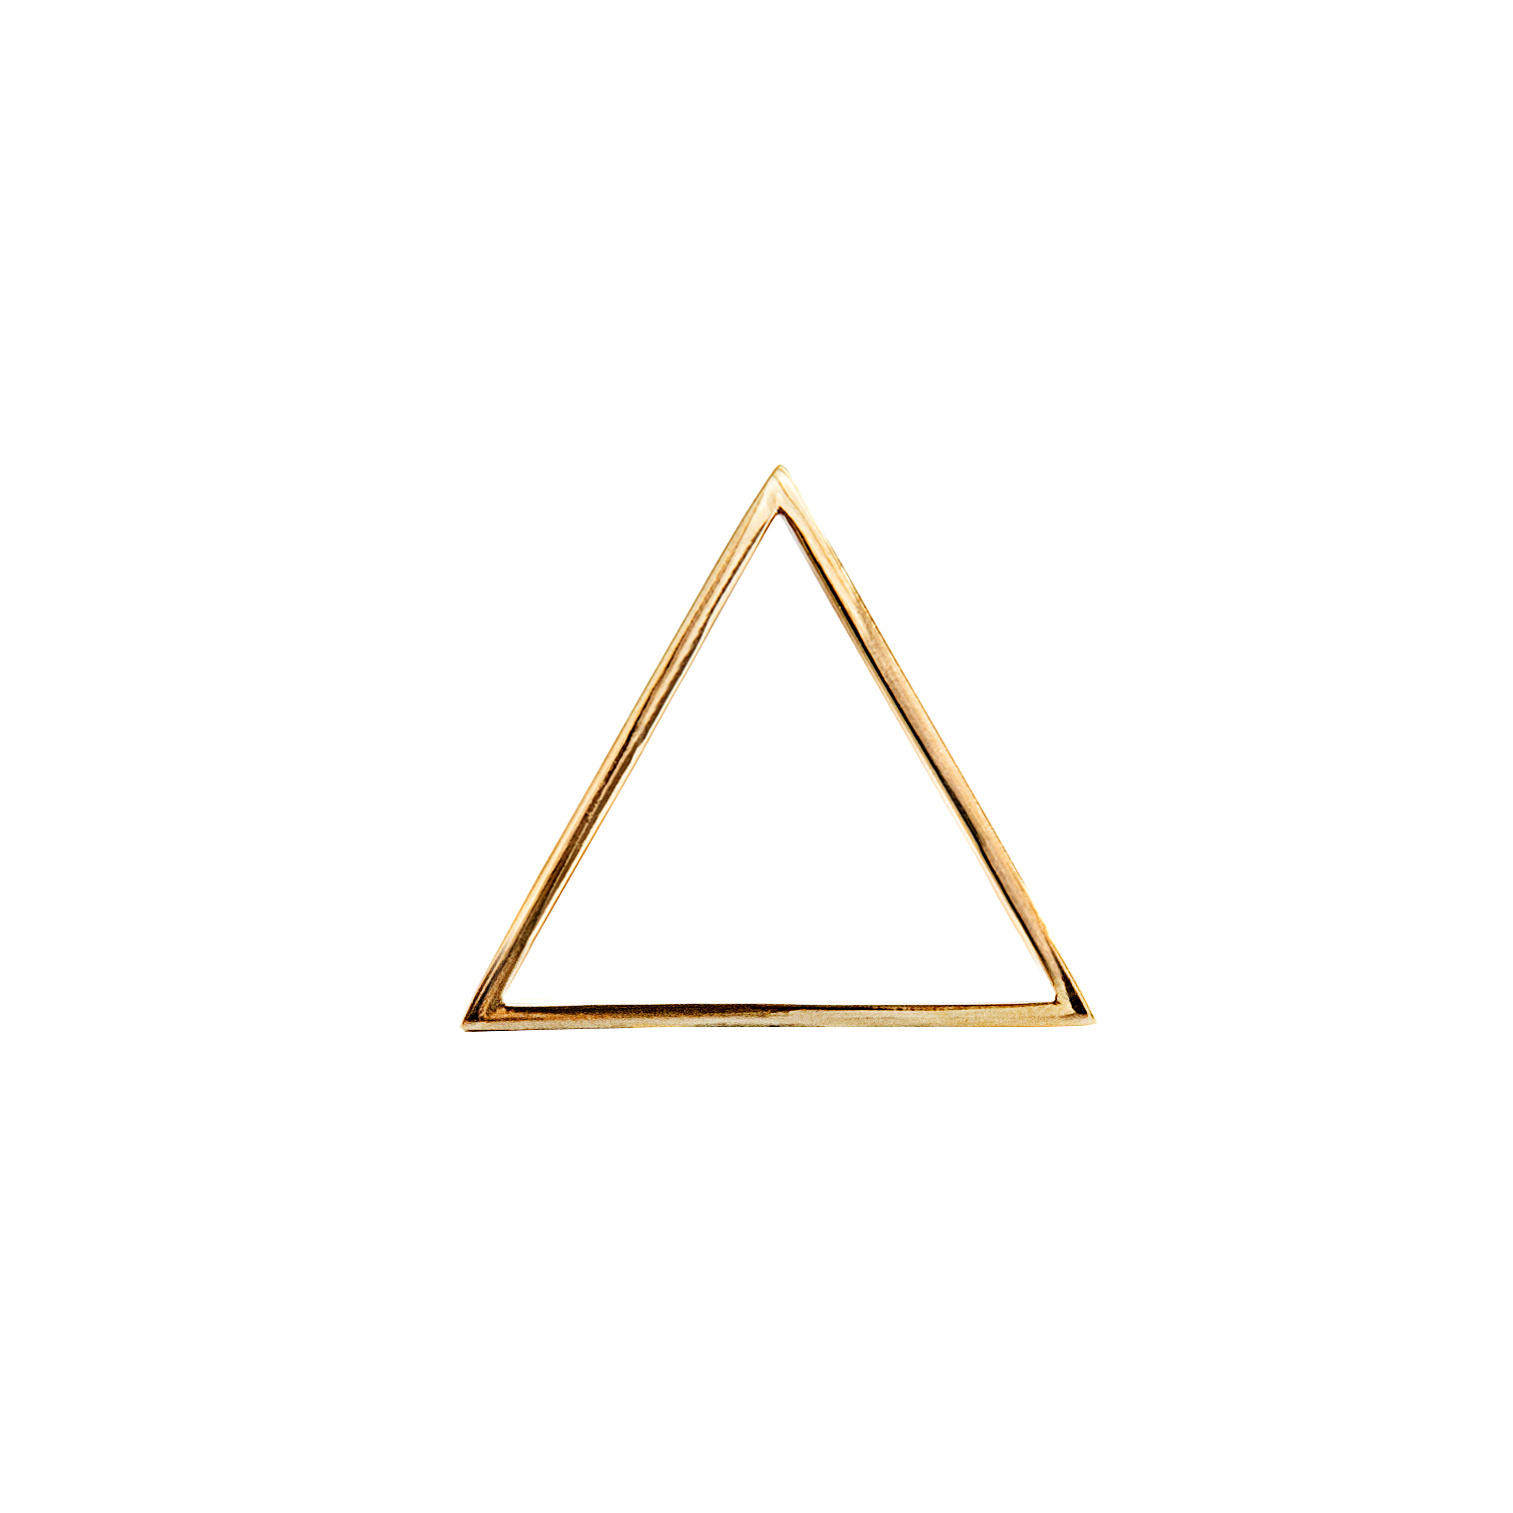 The golden triangle clip